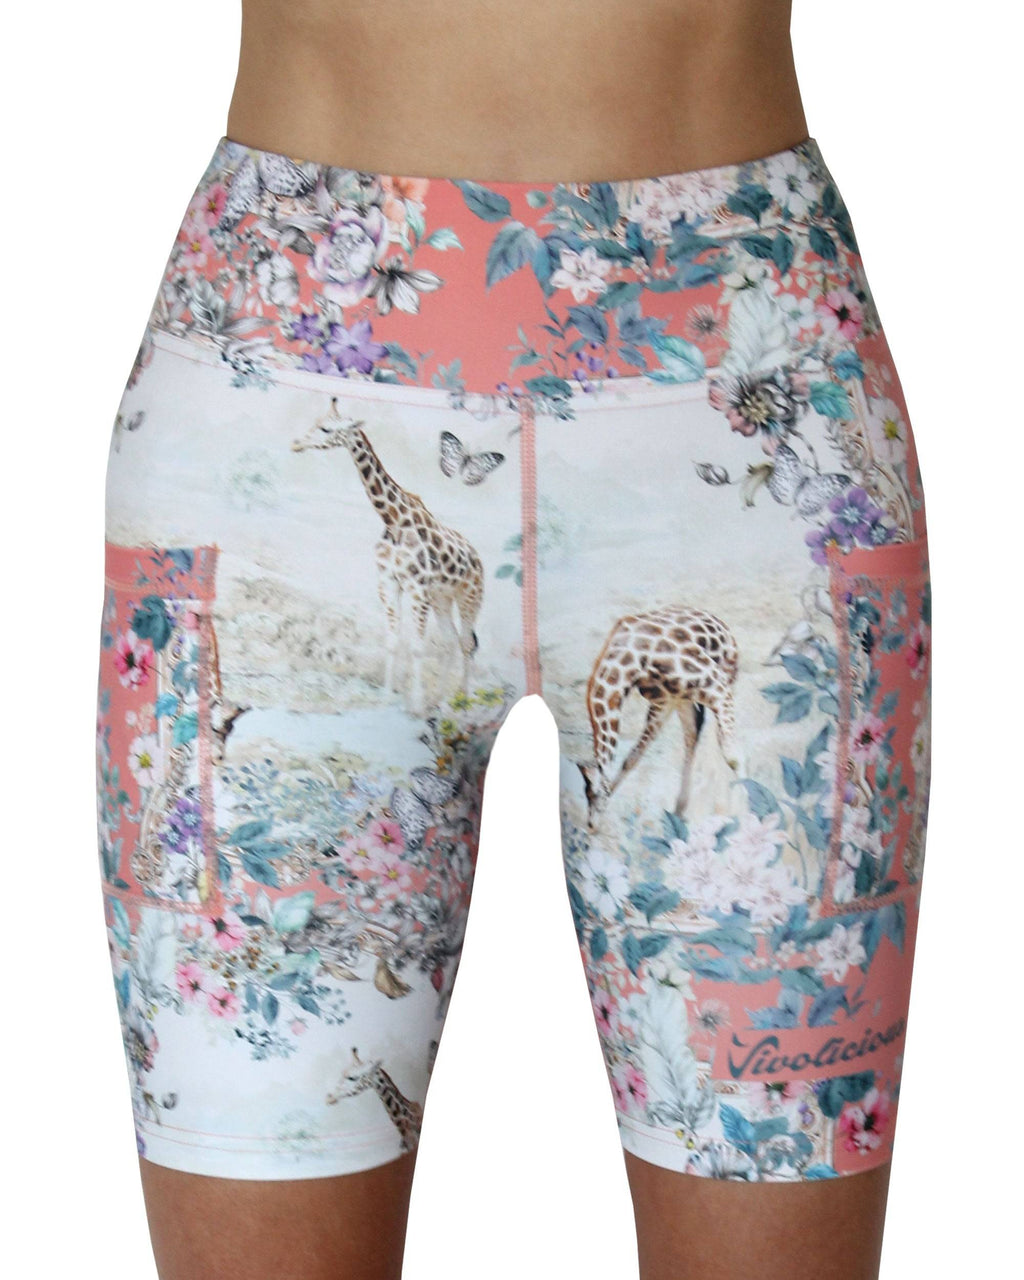 Vivolicious GIRAFFE Tech Shorts PRE-ORDER for OUT OF STOCK SIZES